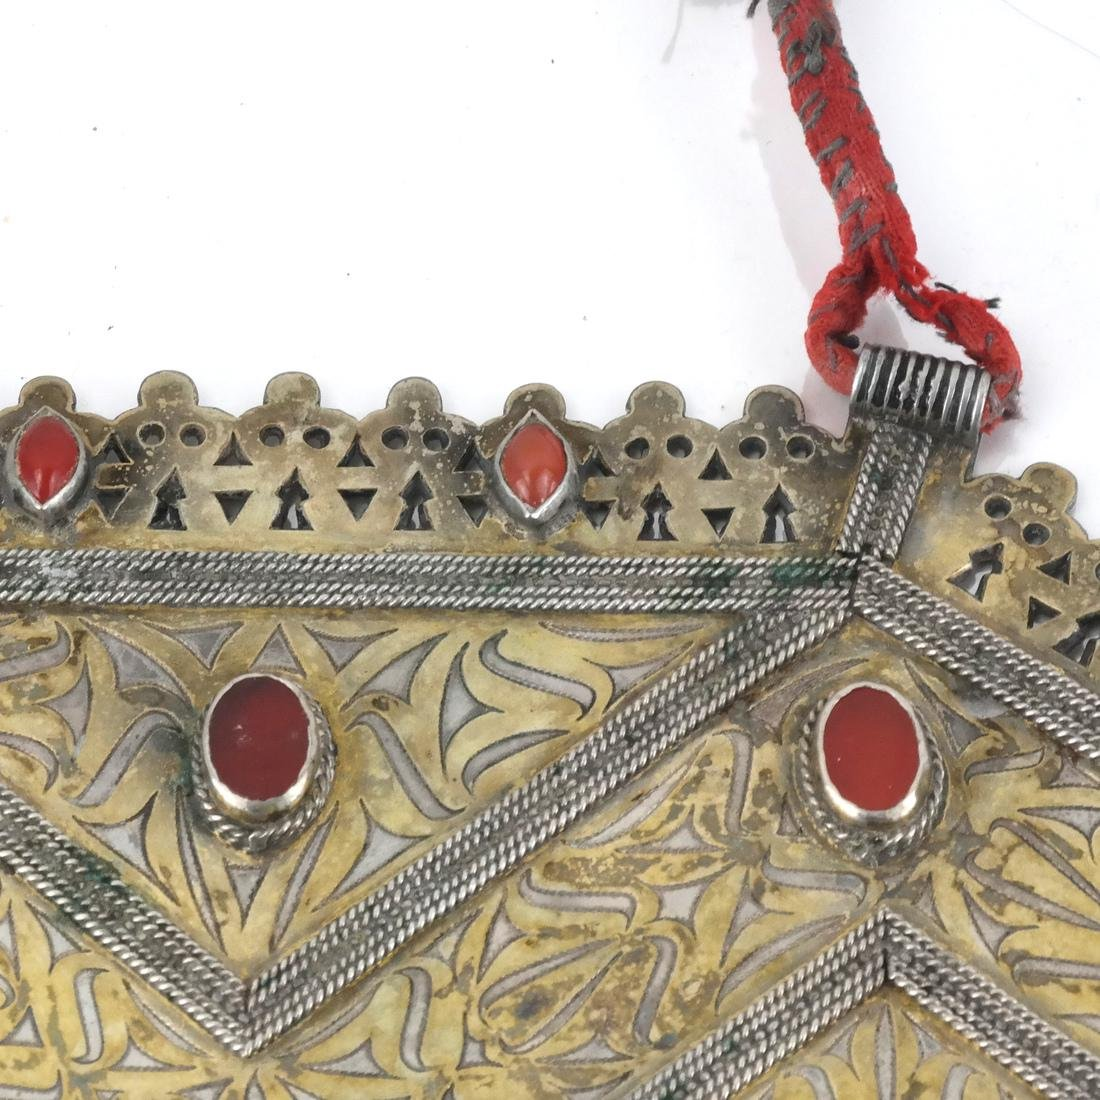 Afghan/Central Asian Antique Jeweled Breastplate - 4